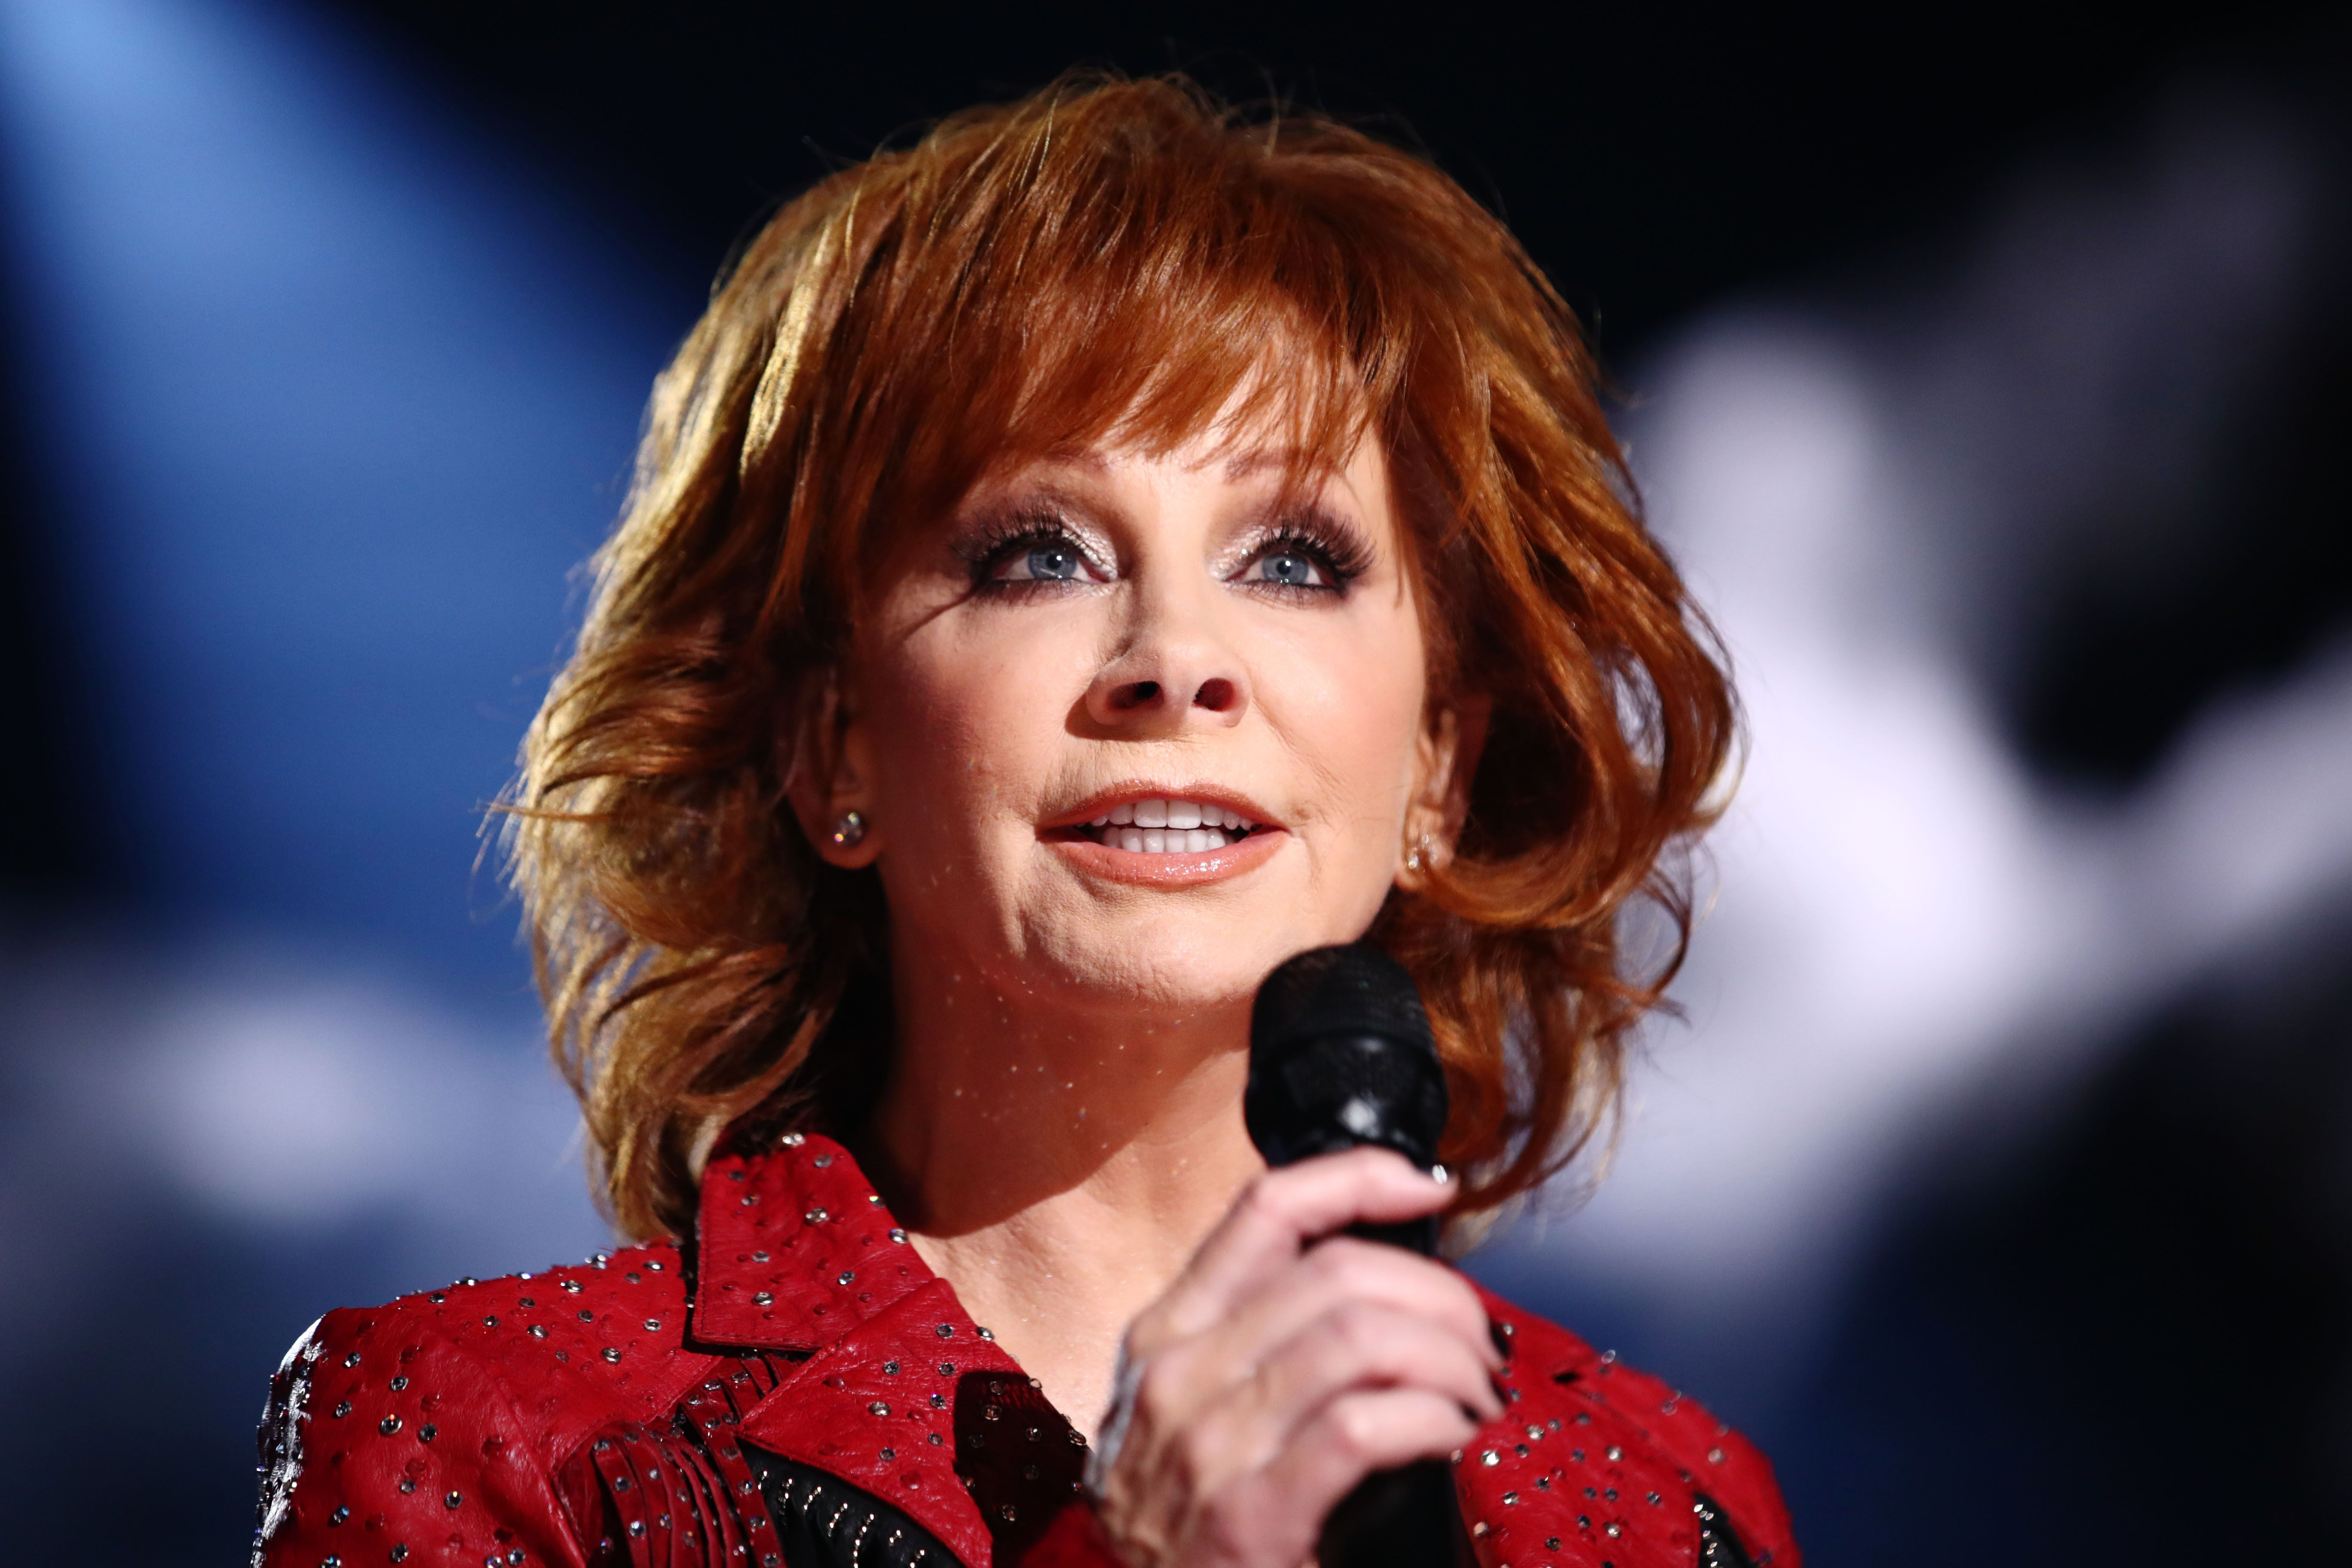 Reba McEntire performs at the Academy of Country Music Awards. | Source: Getty Images